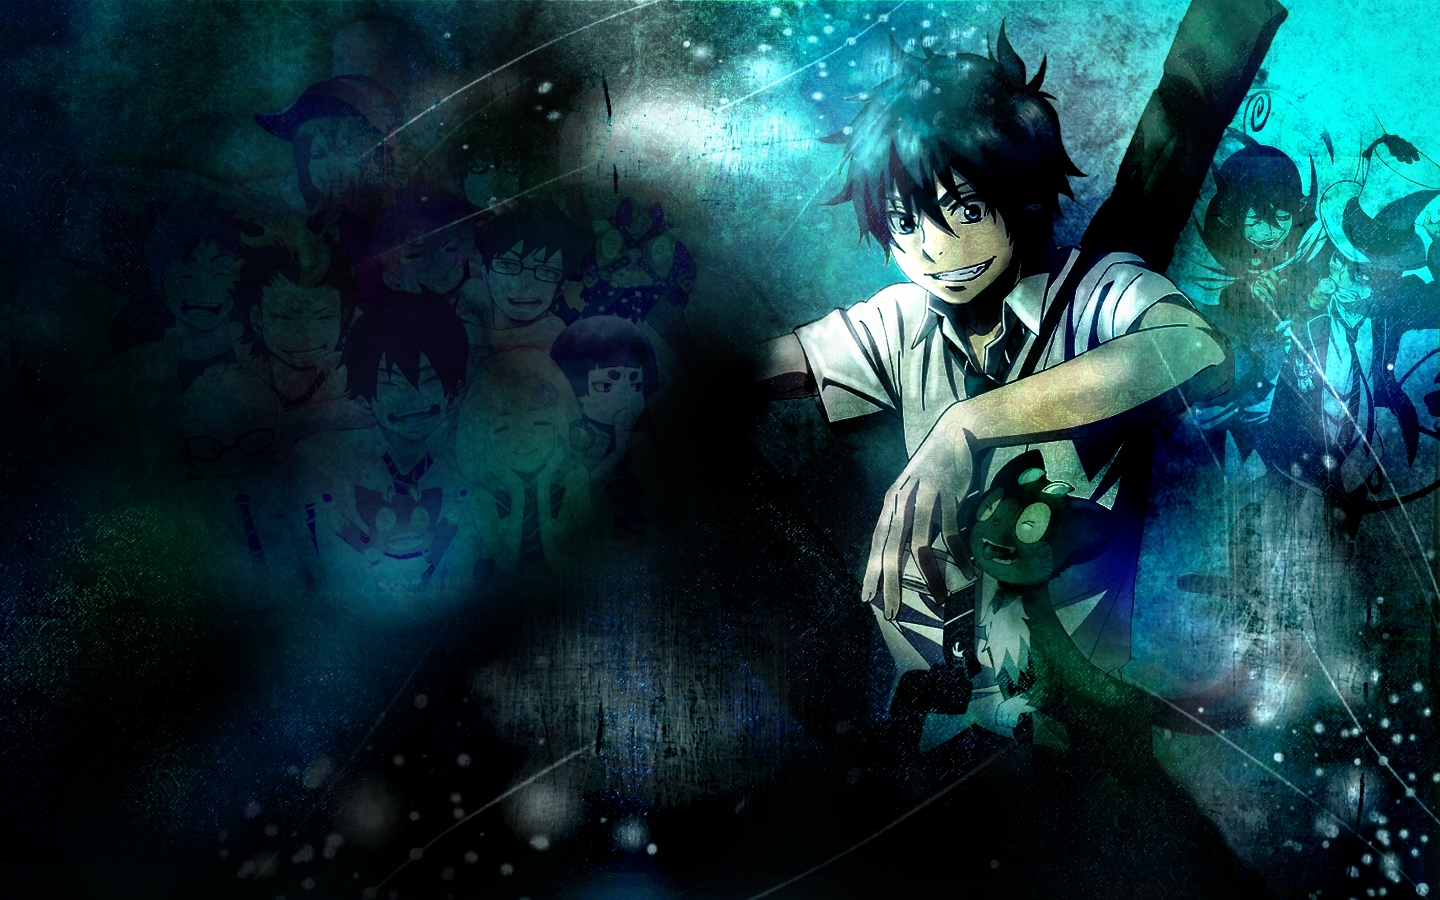 Hd Wallpaper Rin Okumura Ao No Exorcist 0006